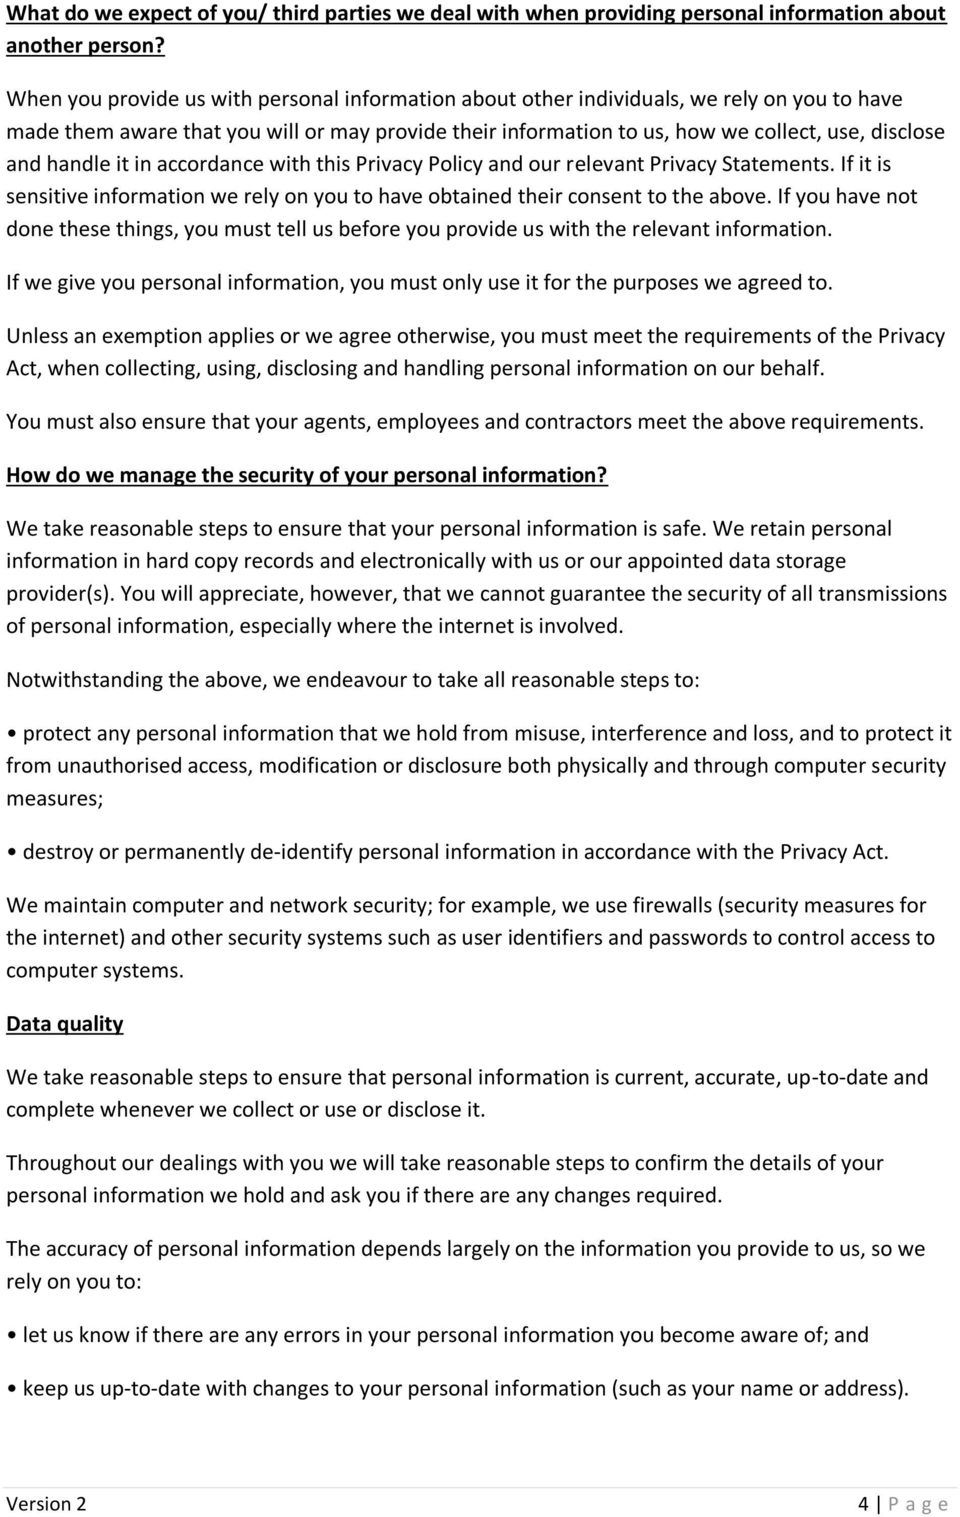 handle it in accordance with this Privacy Policy and our relevant Privacy Statements. If it is sensitive information we rely on you to have obtained their consent to the above.